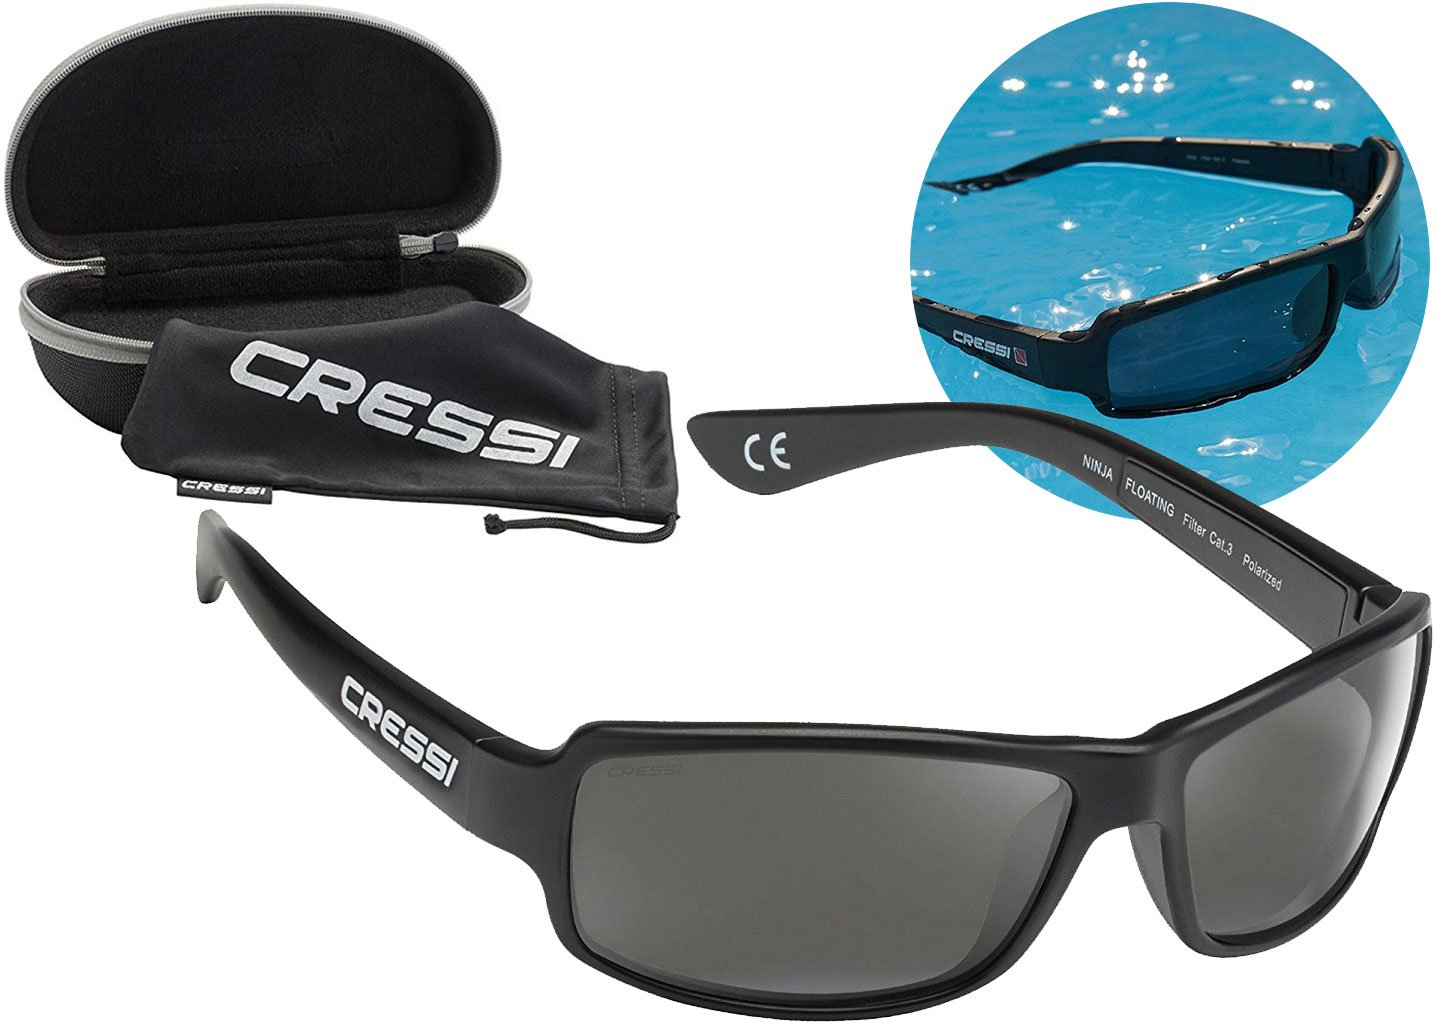 Cressi Ninja Floating, Adult Sport Buoyant Sunglasses, Polarized Lenses, Protective Case | Best for Boating, Sailing, Fishing, Water Sports, Beach ...